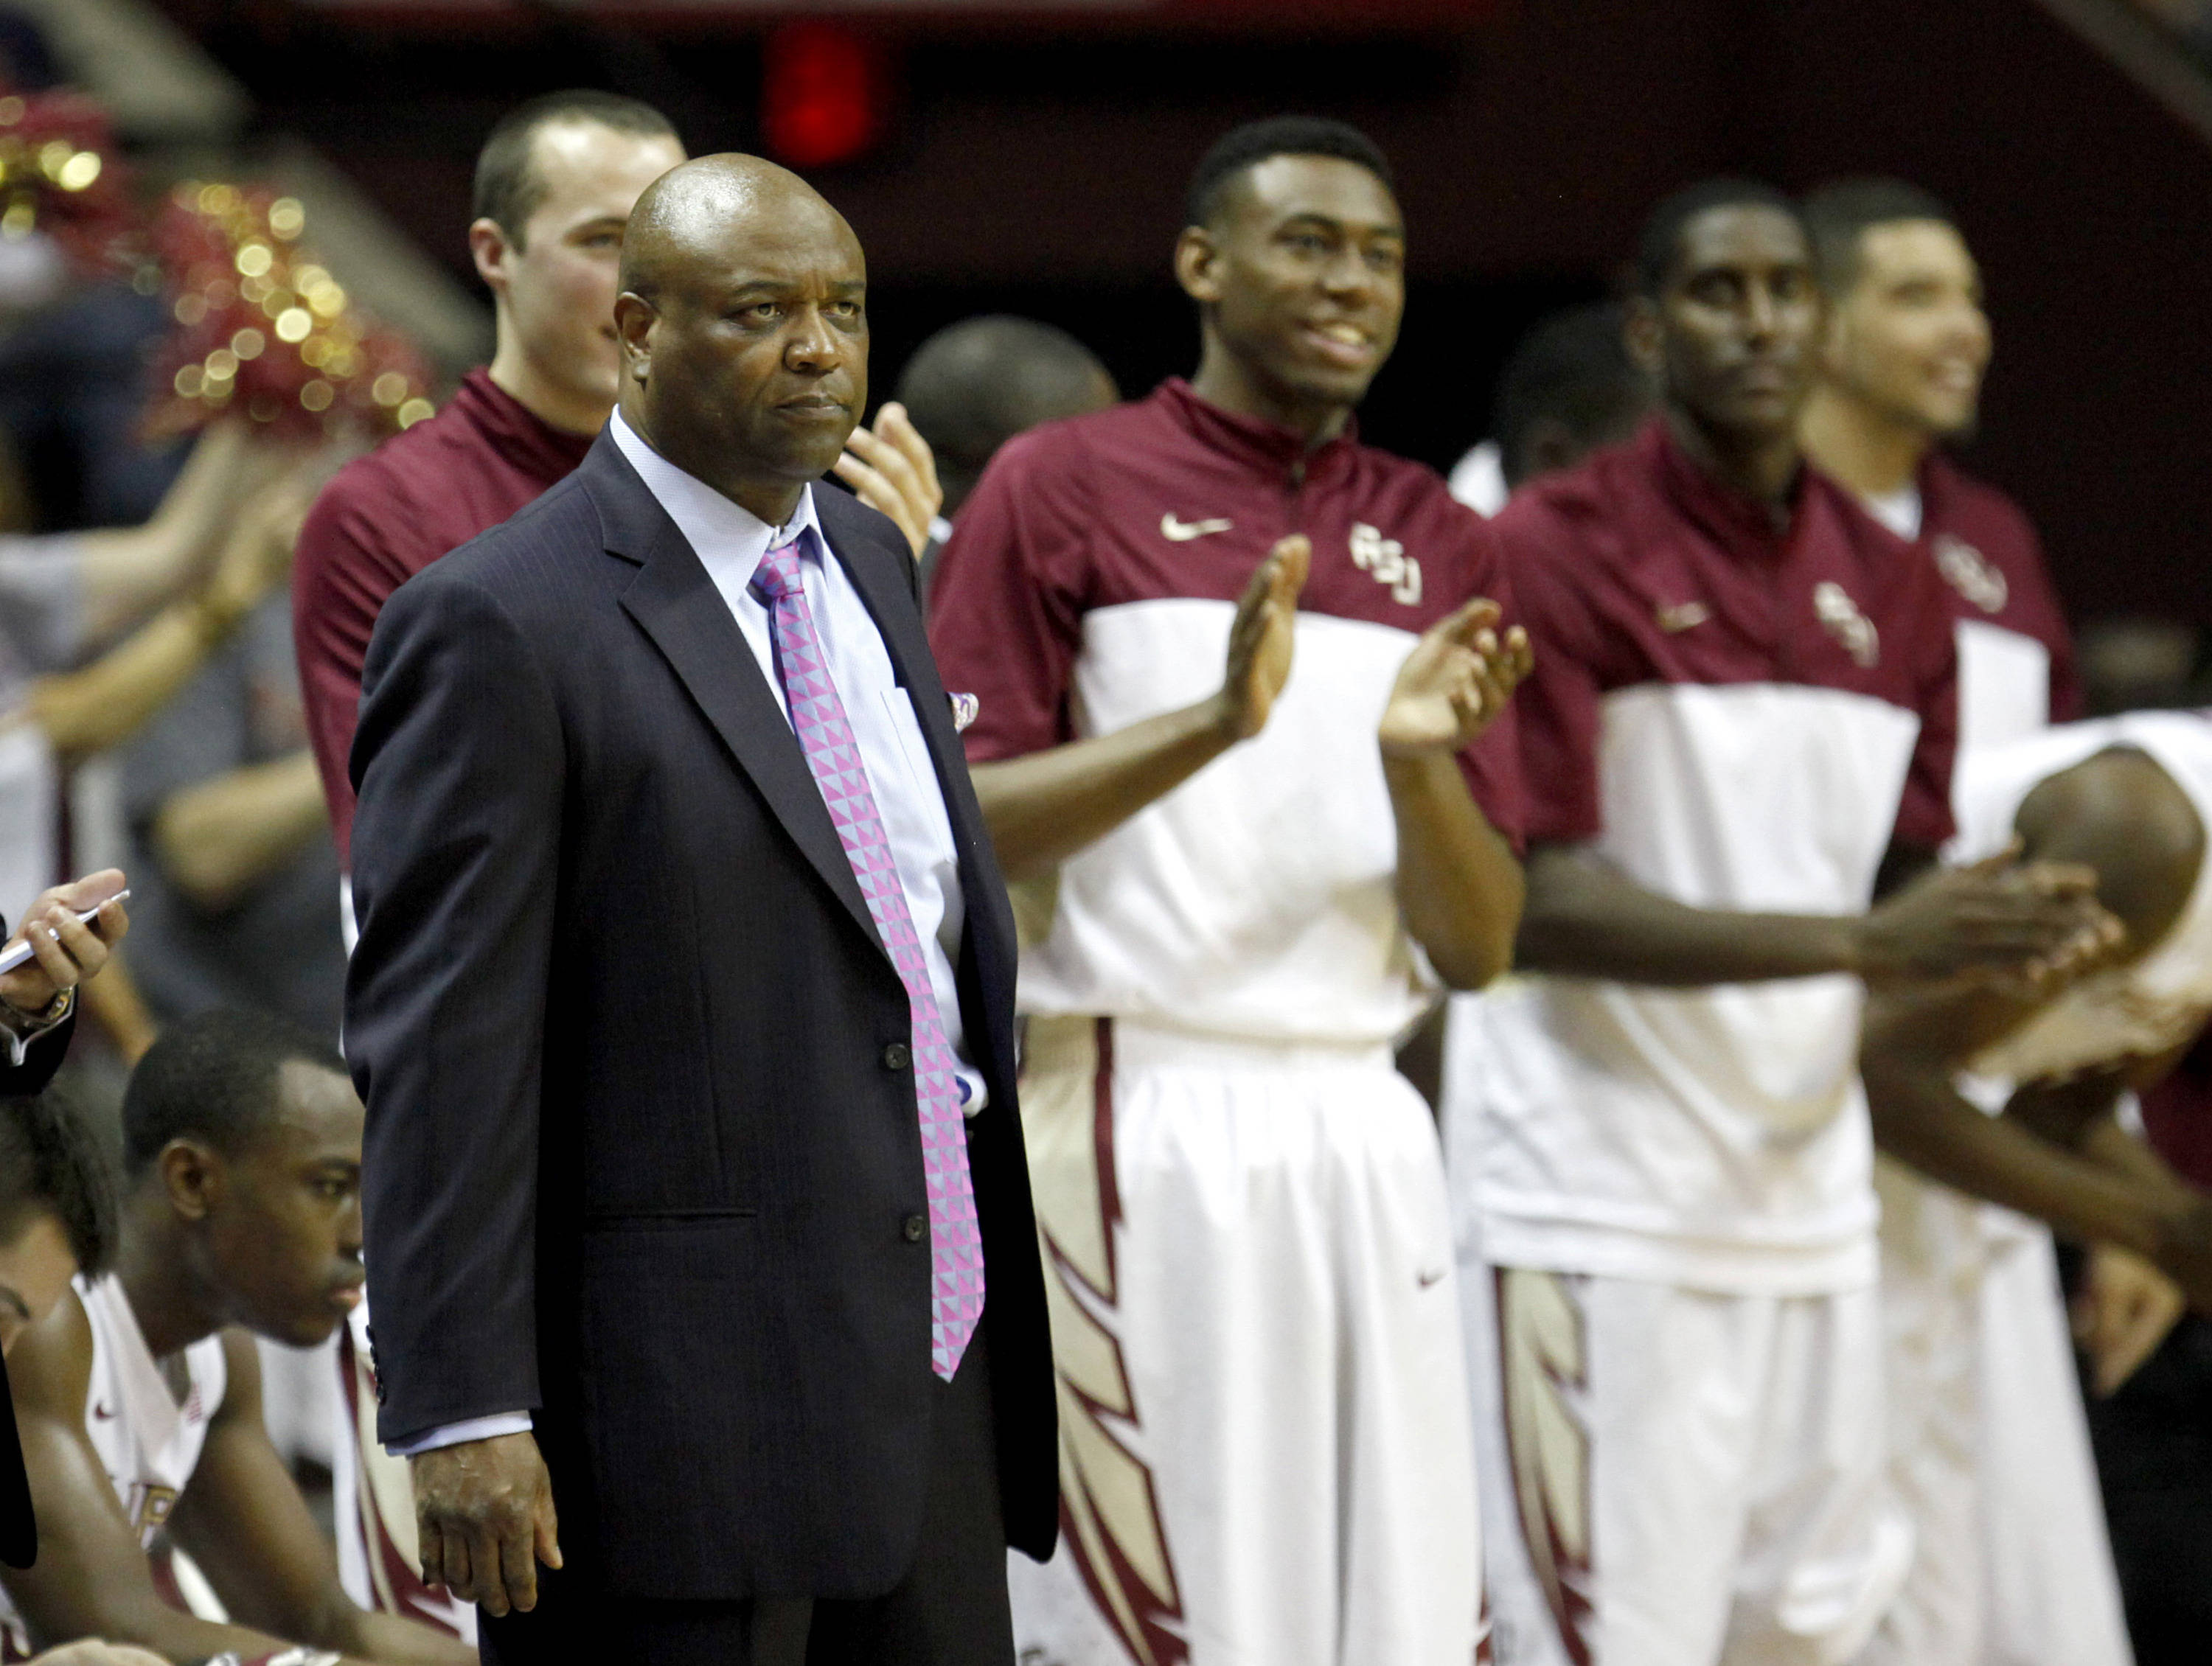 Mar 9, 2014; Tallahassee, FL, USA; Florida State Seminoles head coach Leonard Hamilton on the sideline against the Syracuse Orange during the second half at Donald L. Tucker Center. Syracuse defeated Florida State 74-58. Mandatory Credit: Matt Stamey-USA TODAY Sports